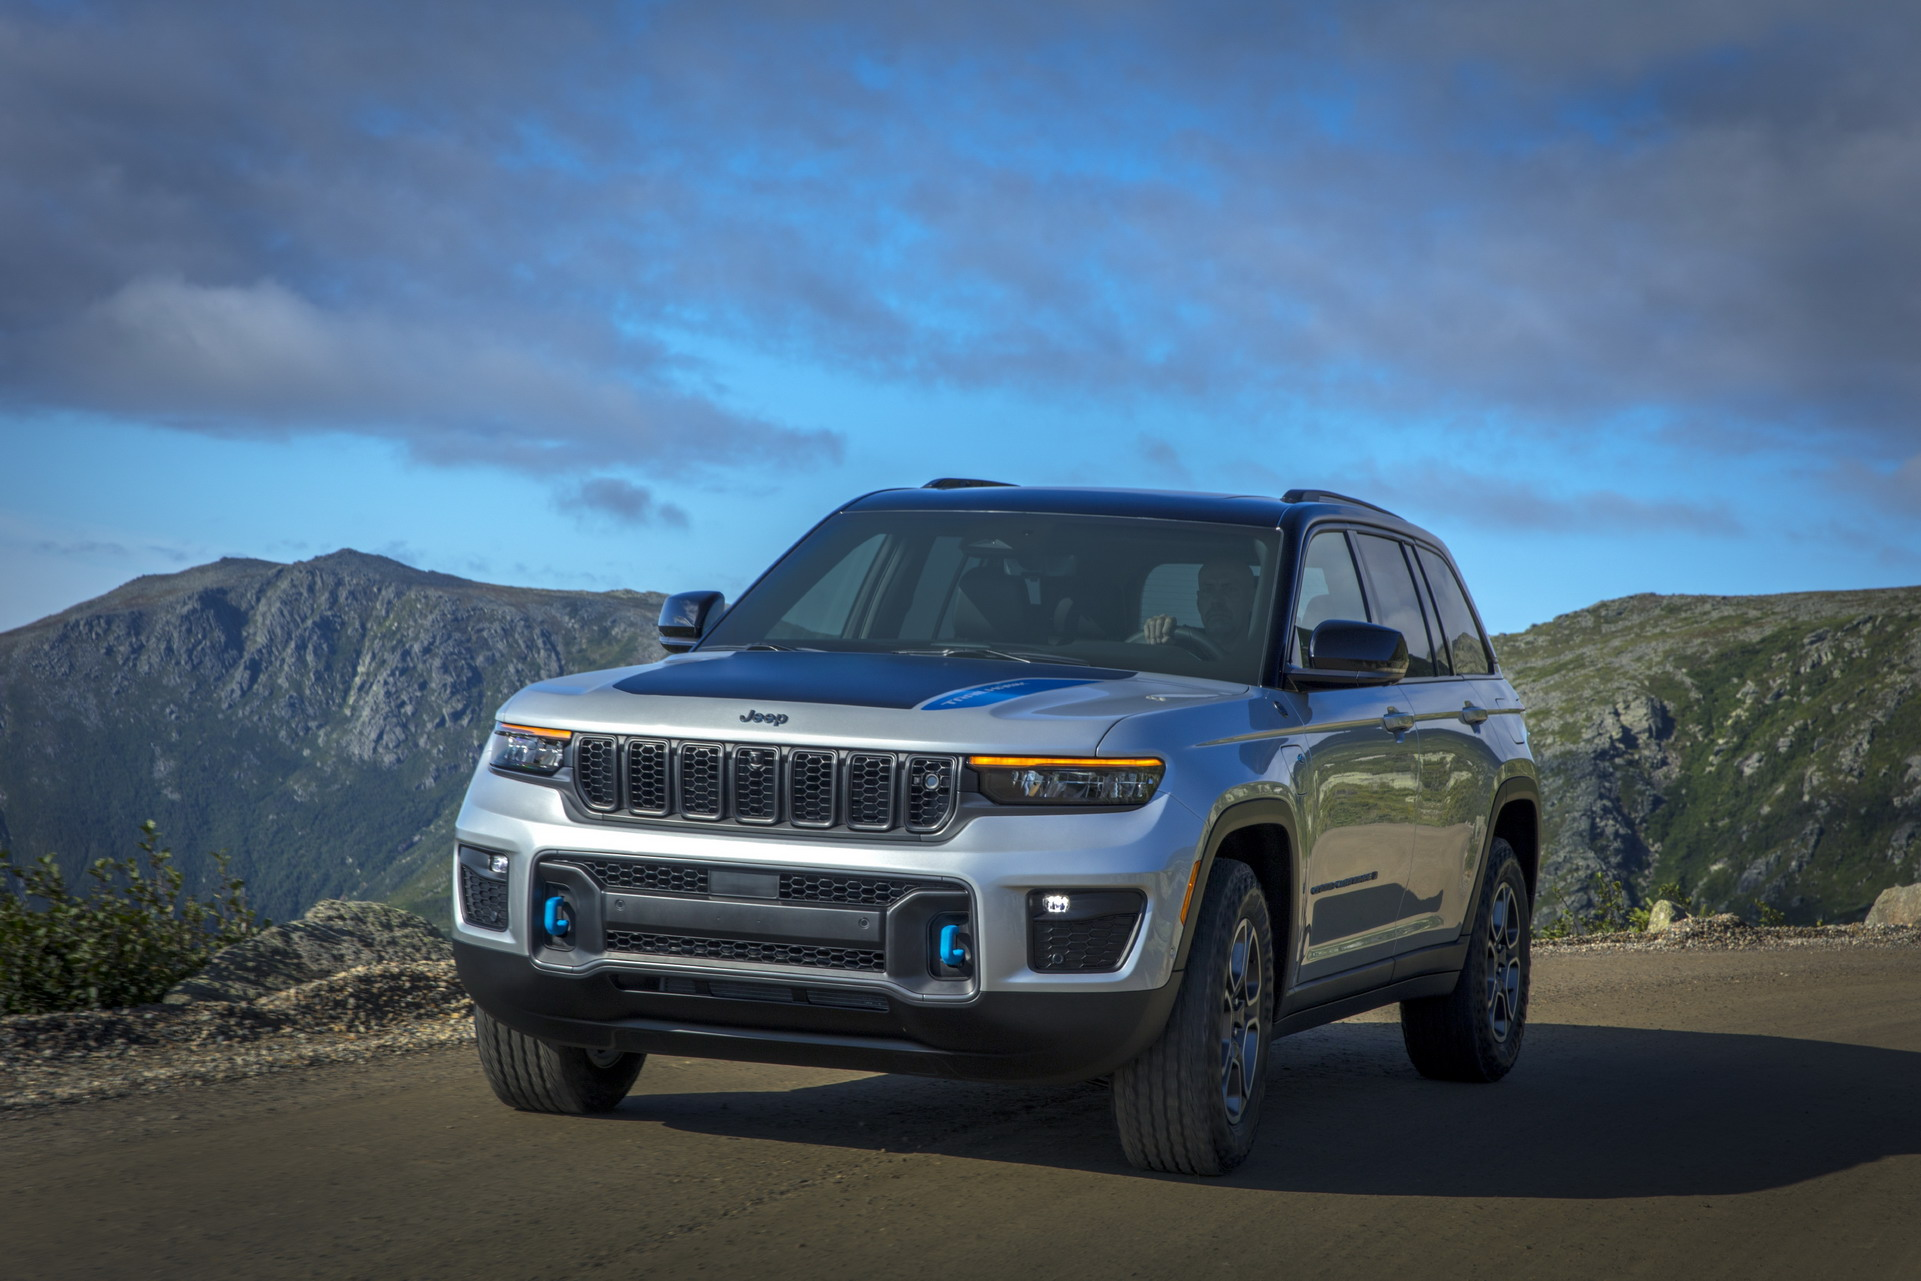 2022 Jeep Grand Cherokee Trailhawk 4xe Front Three-Quarter Wallpapers (1)